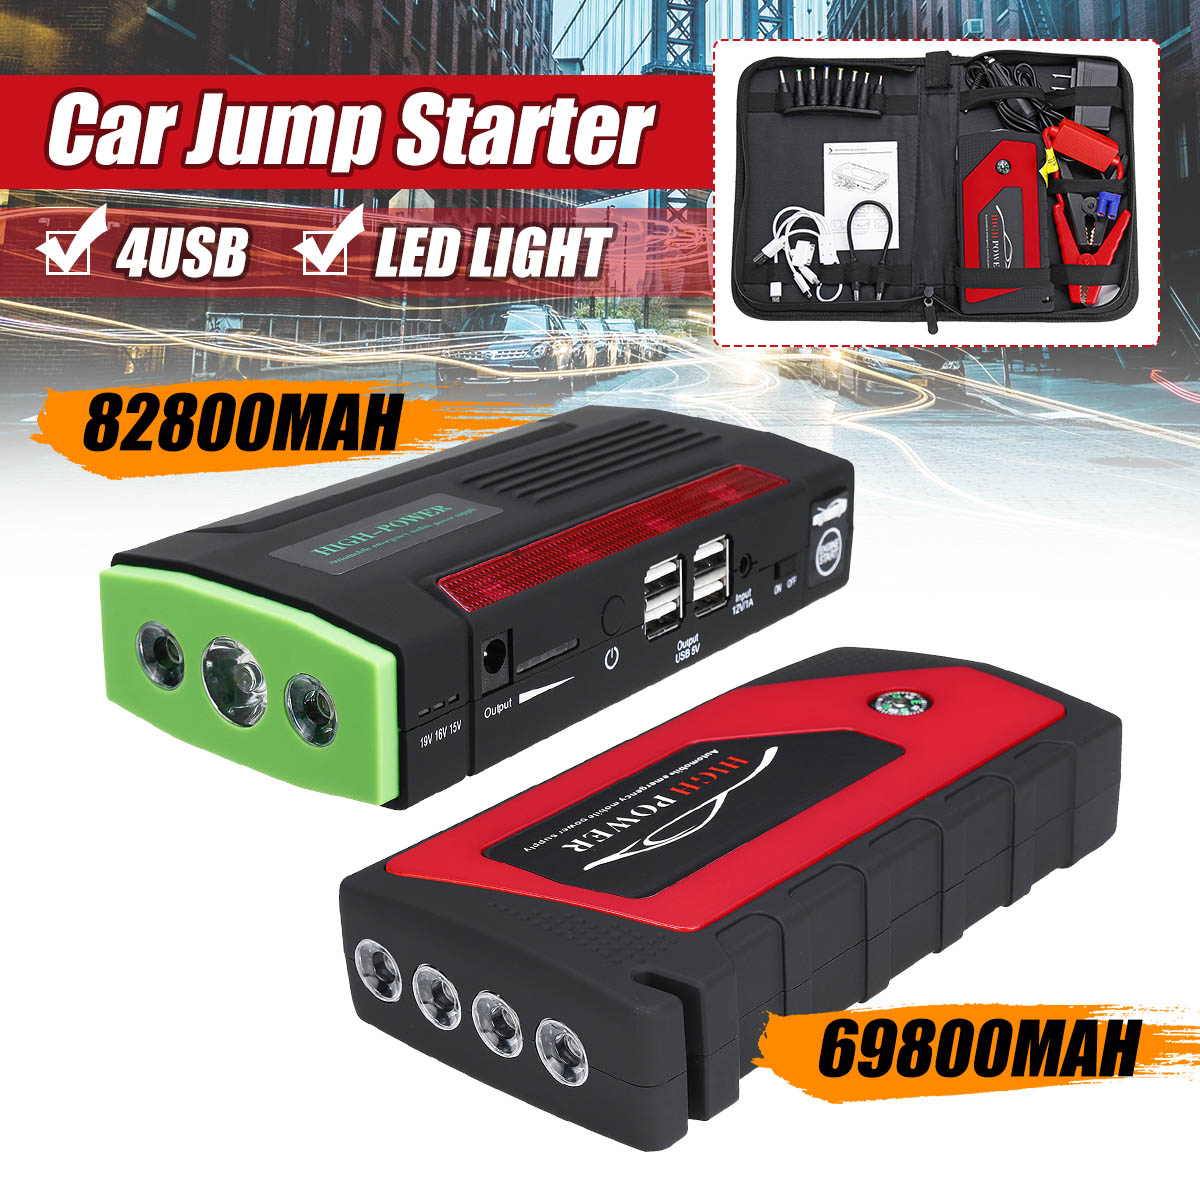 82800 mAh 4 USB Voiture Jump Starter Pack chargeur portable Booster batterie externe Battery82800mAh 4 USB Voiture J